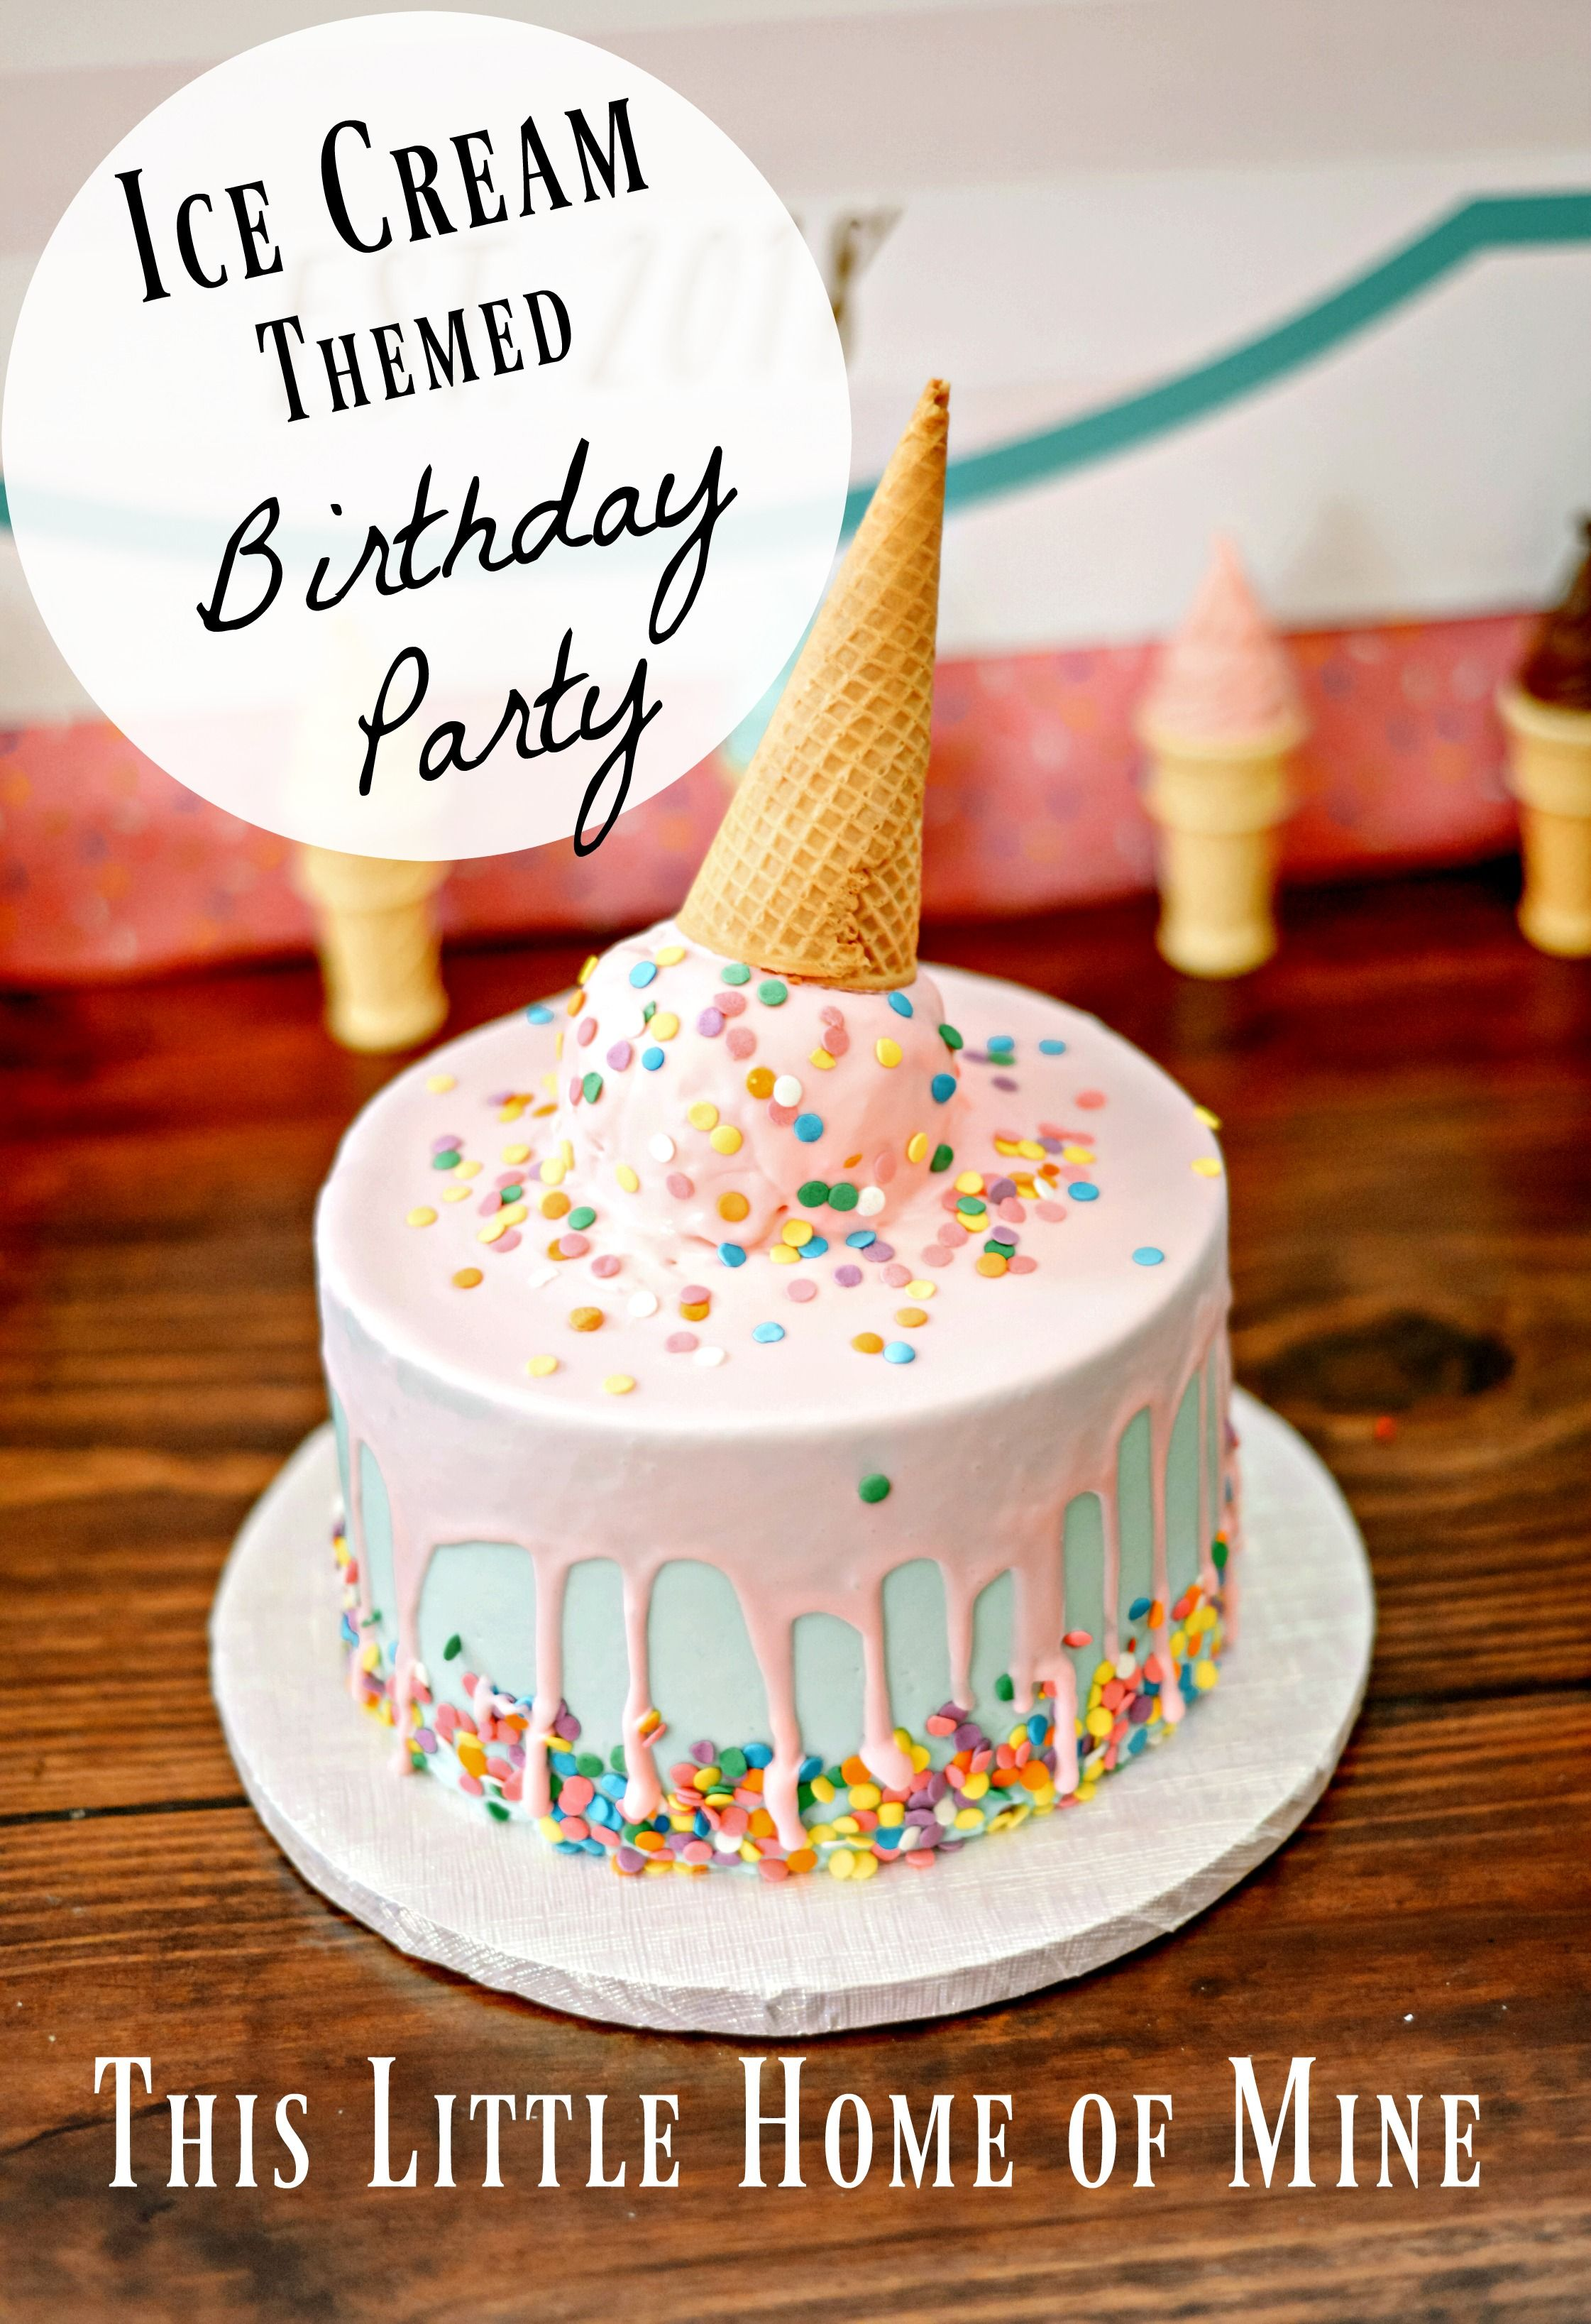 Ice Cream Themed Birthday Party for Kids #icecreambirthdayparty